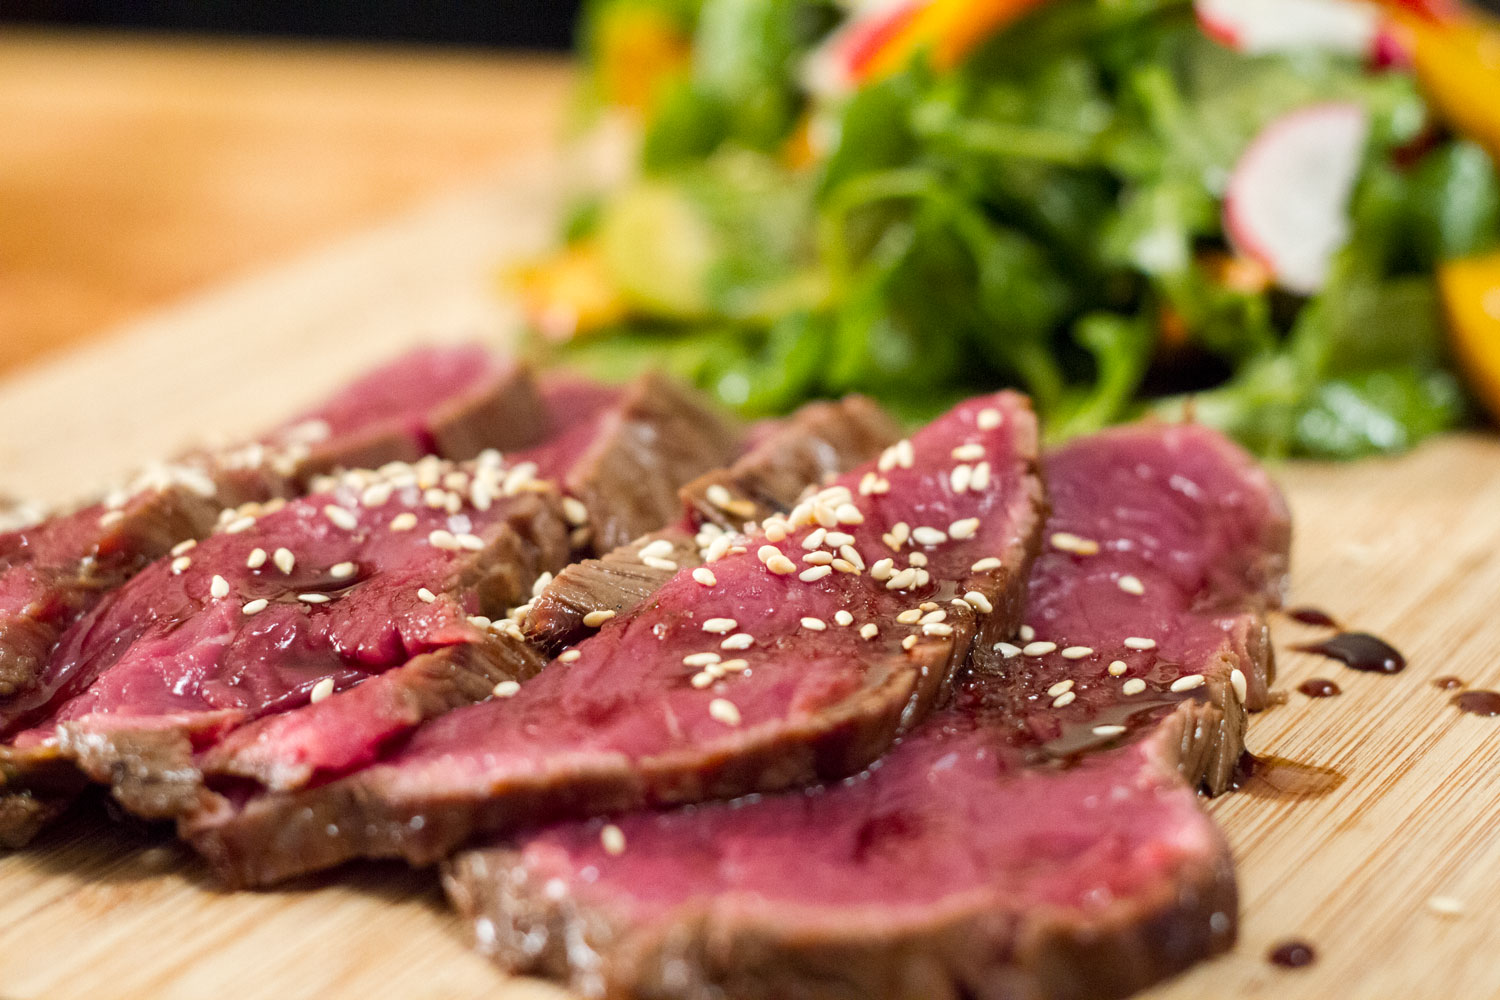 salade de tataki de boeuf l 39 anarchie culinaire selon bob le chef. Black Bedroom Furniture Sets. Home Design Ideas